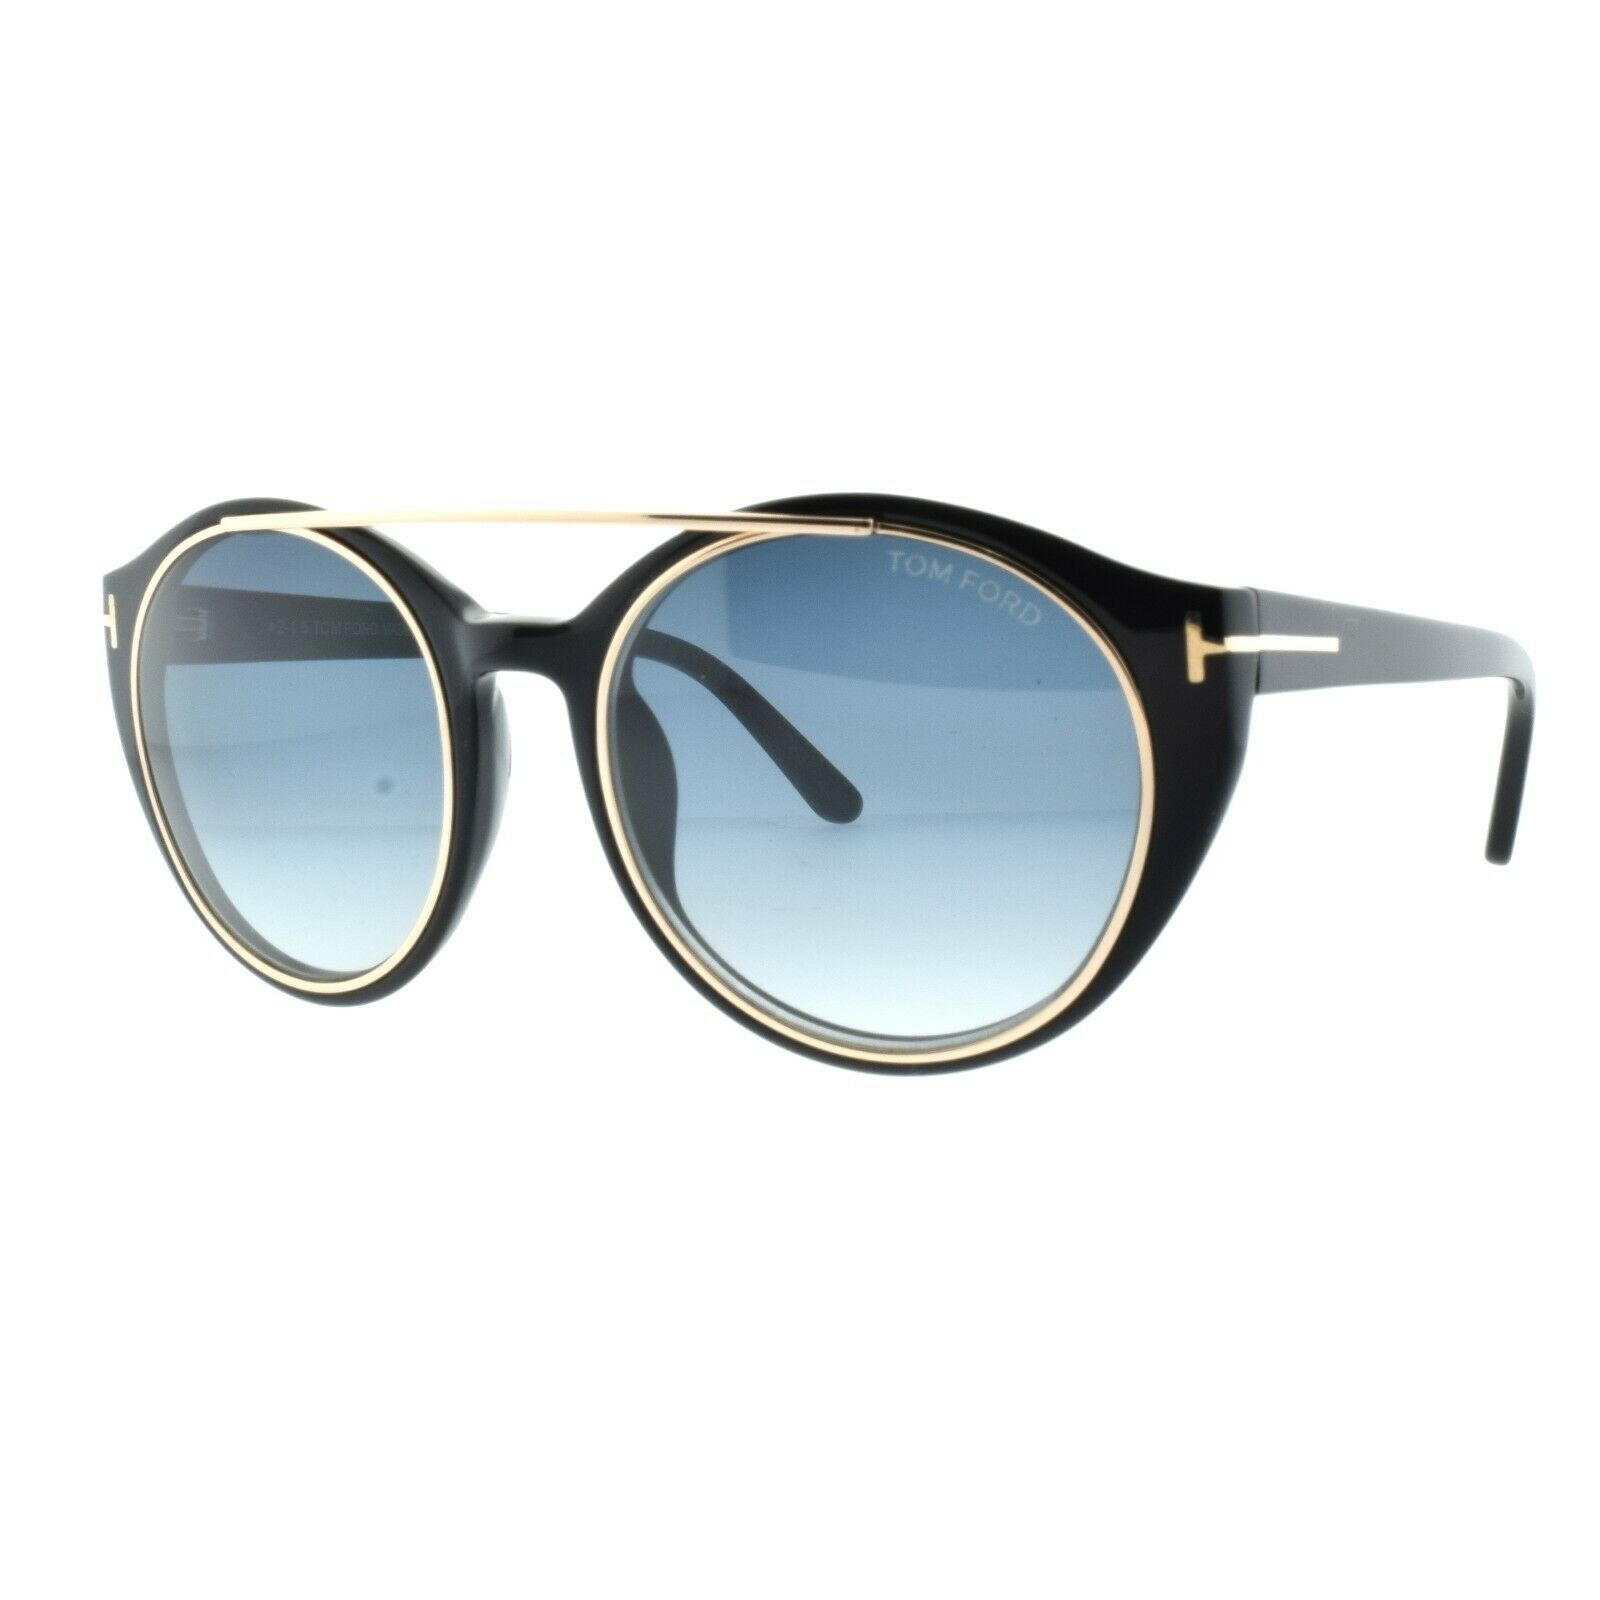 08f14e316db ... UPC 664689654765 product image for Tom Ford Womens Women s Joan 52mm  Sunglasses